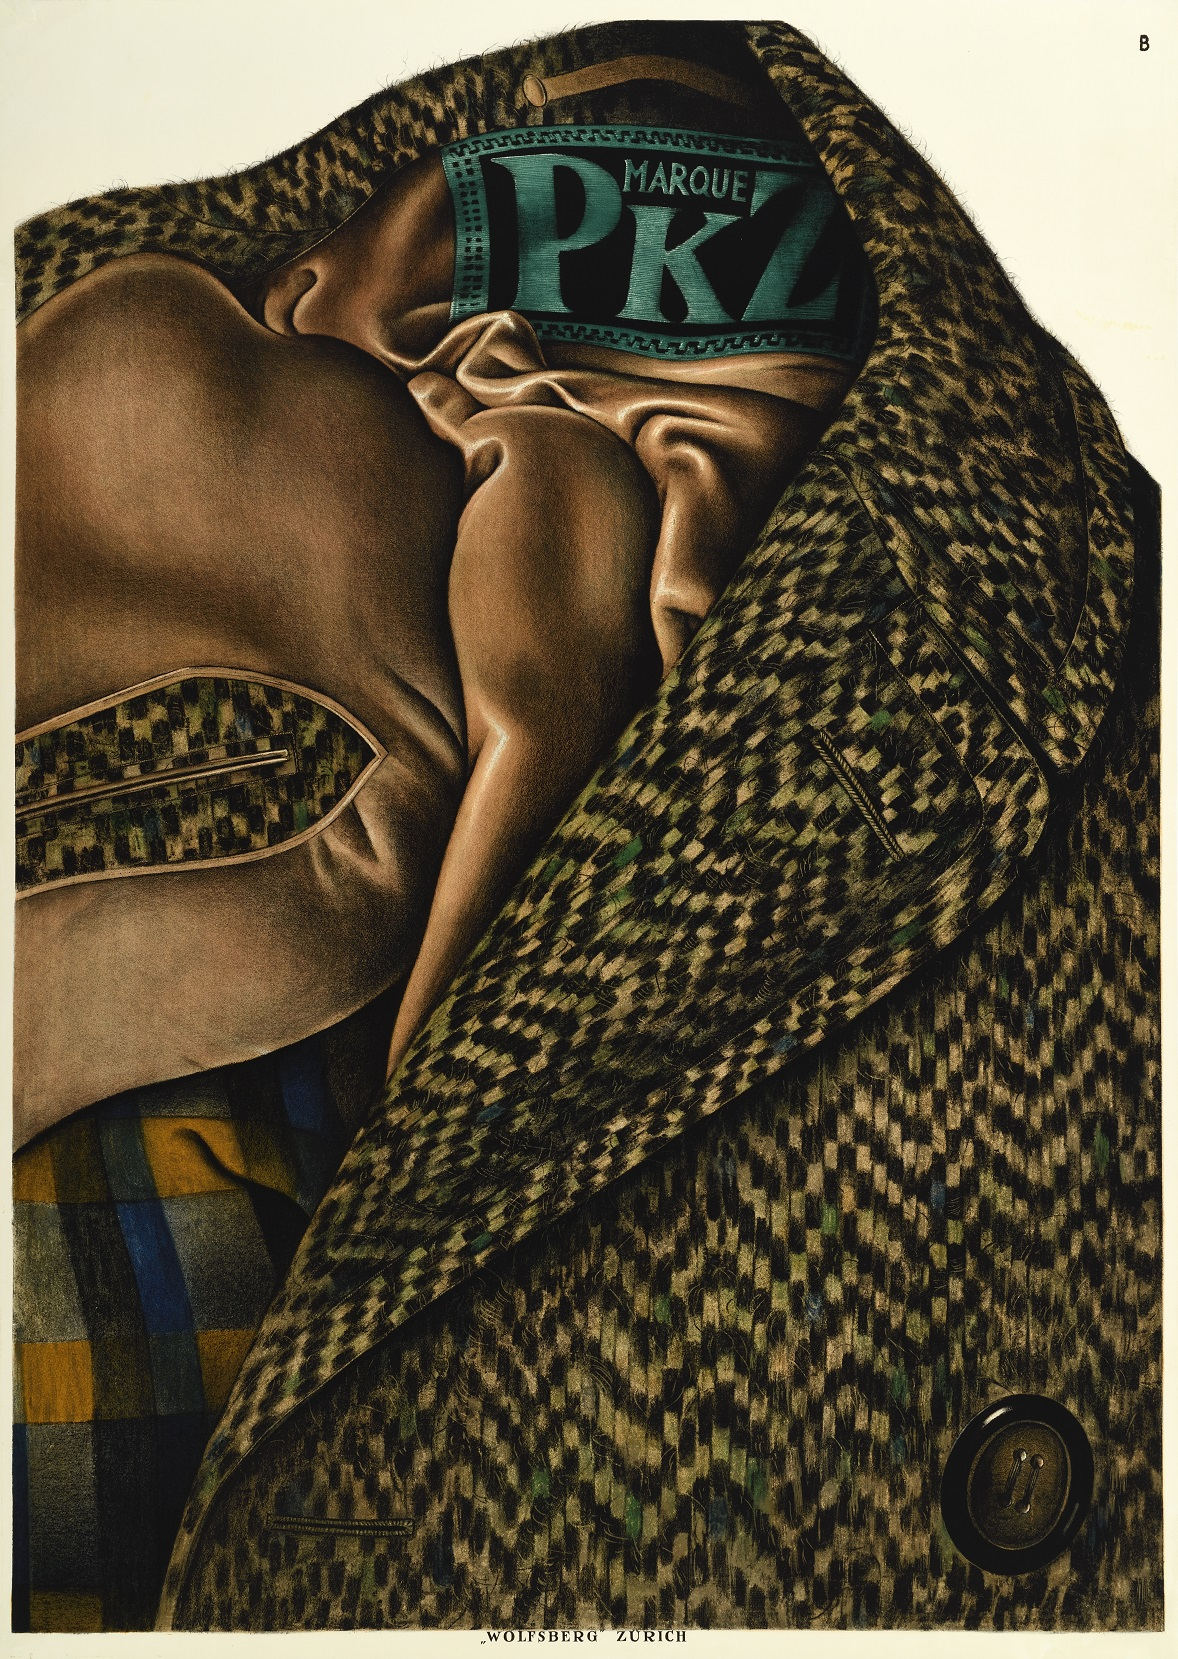 'PKZ', a poster by Otto Baumberger, 1923.